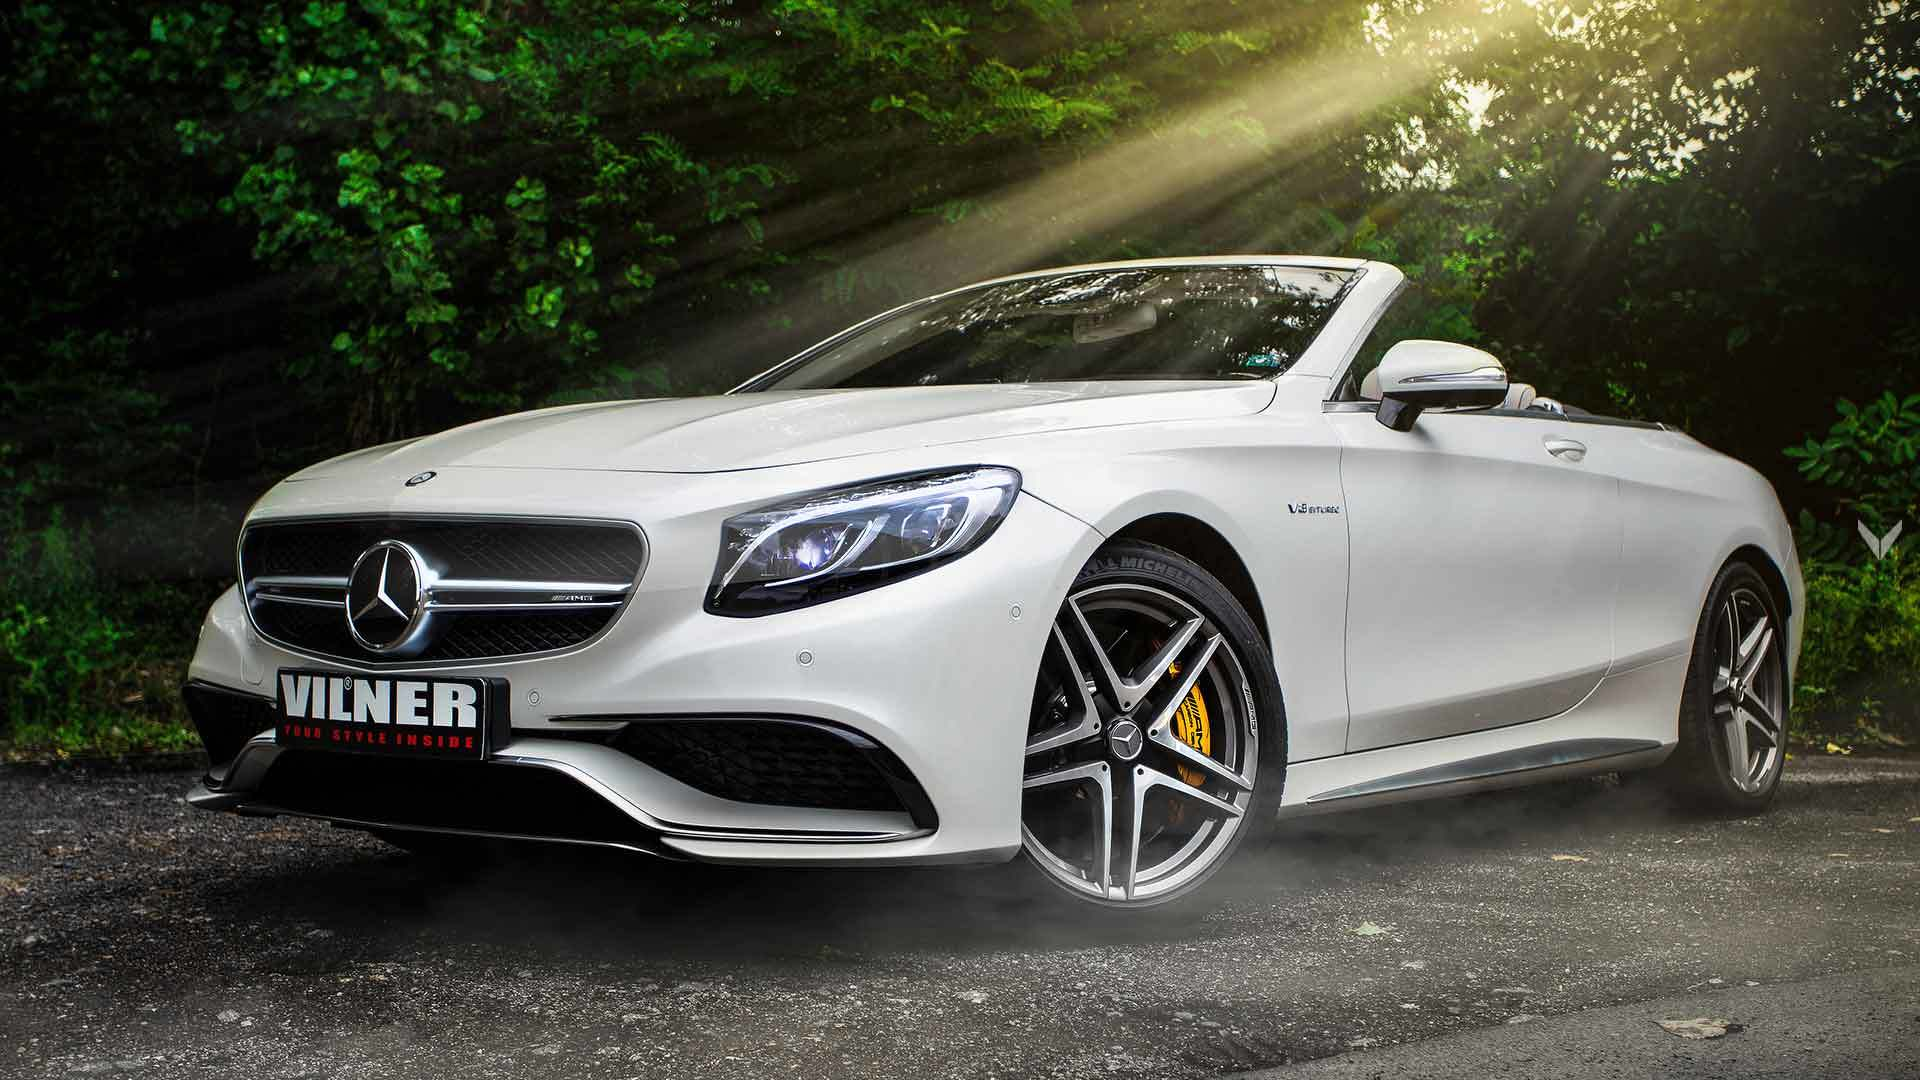 It is no secret that the Mercedes-AMG S63 convertible offers quite a lot in terms of luxury as it is. The Bulgarian car design studio Vilner still managed to find something that was missing